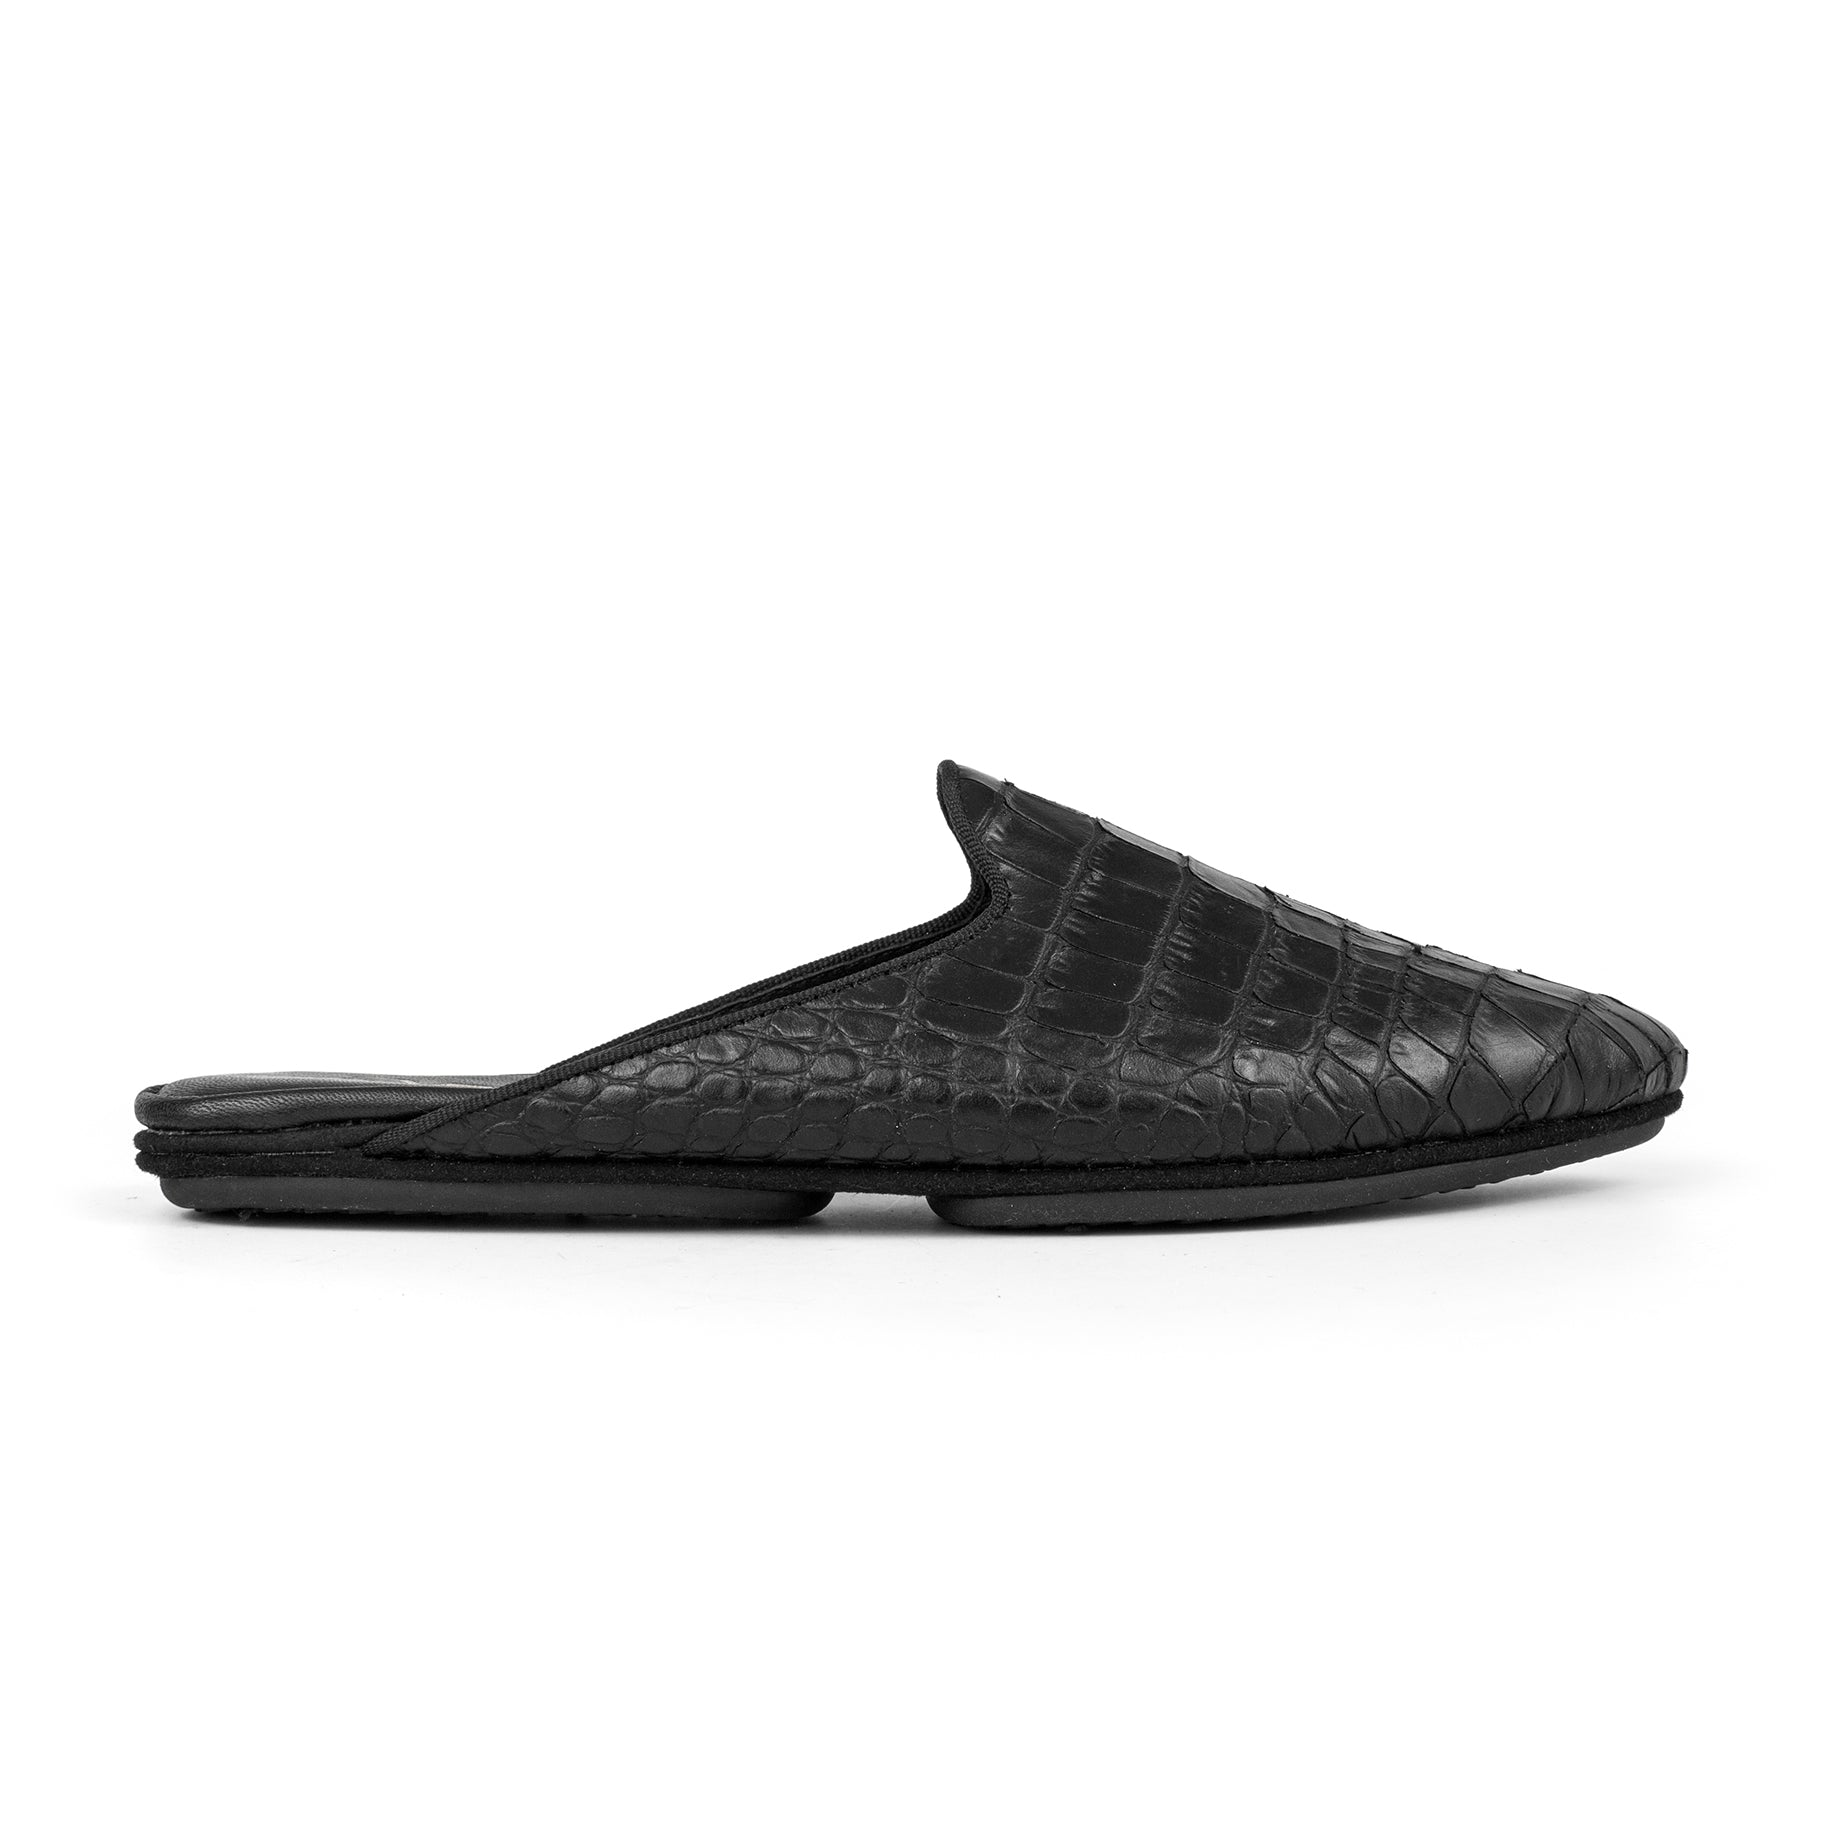 Yosi Samra Croco Leather Printed Mule